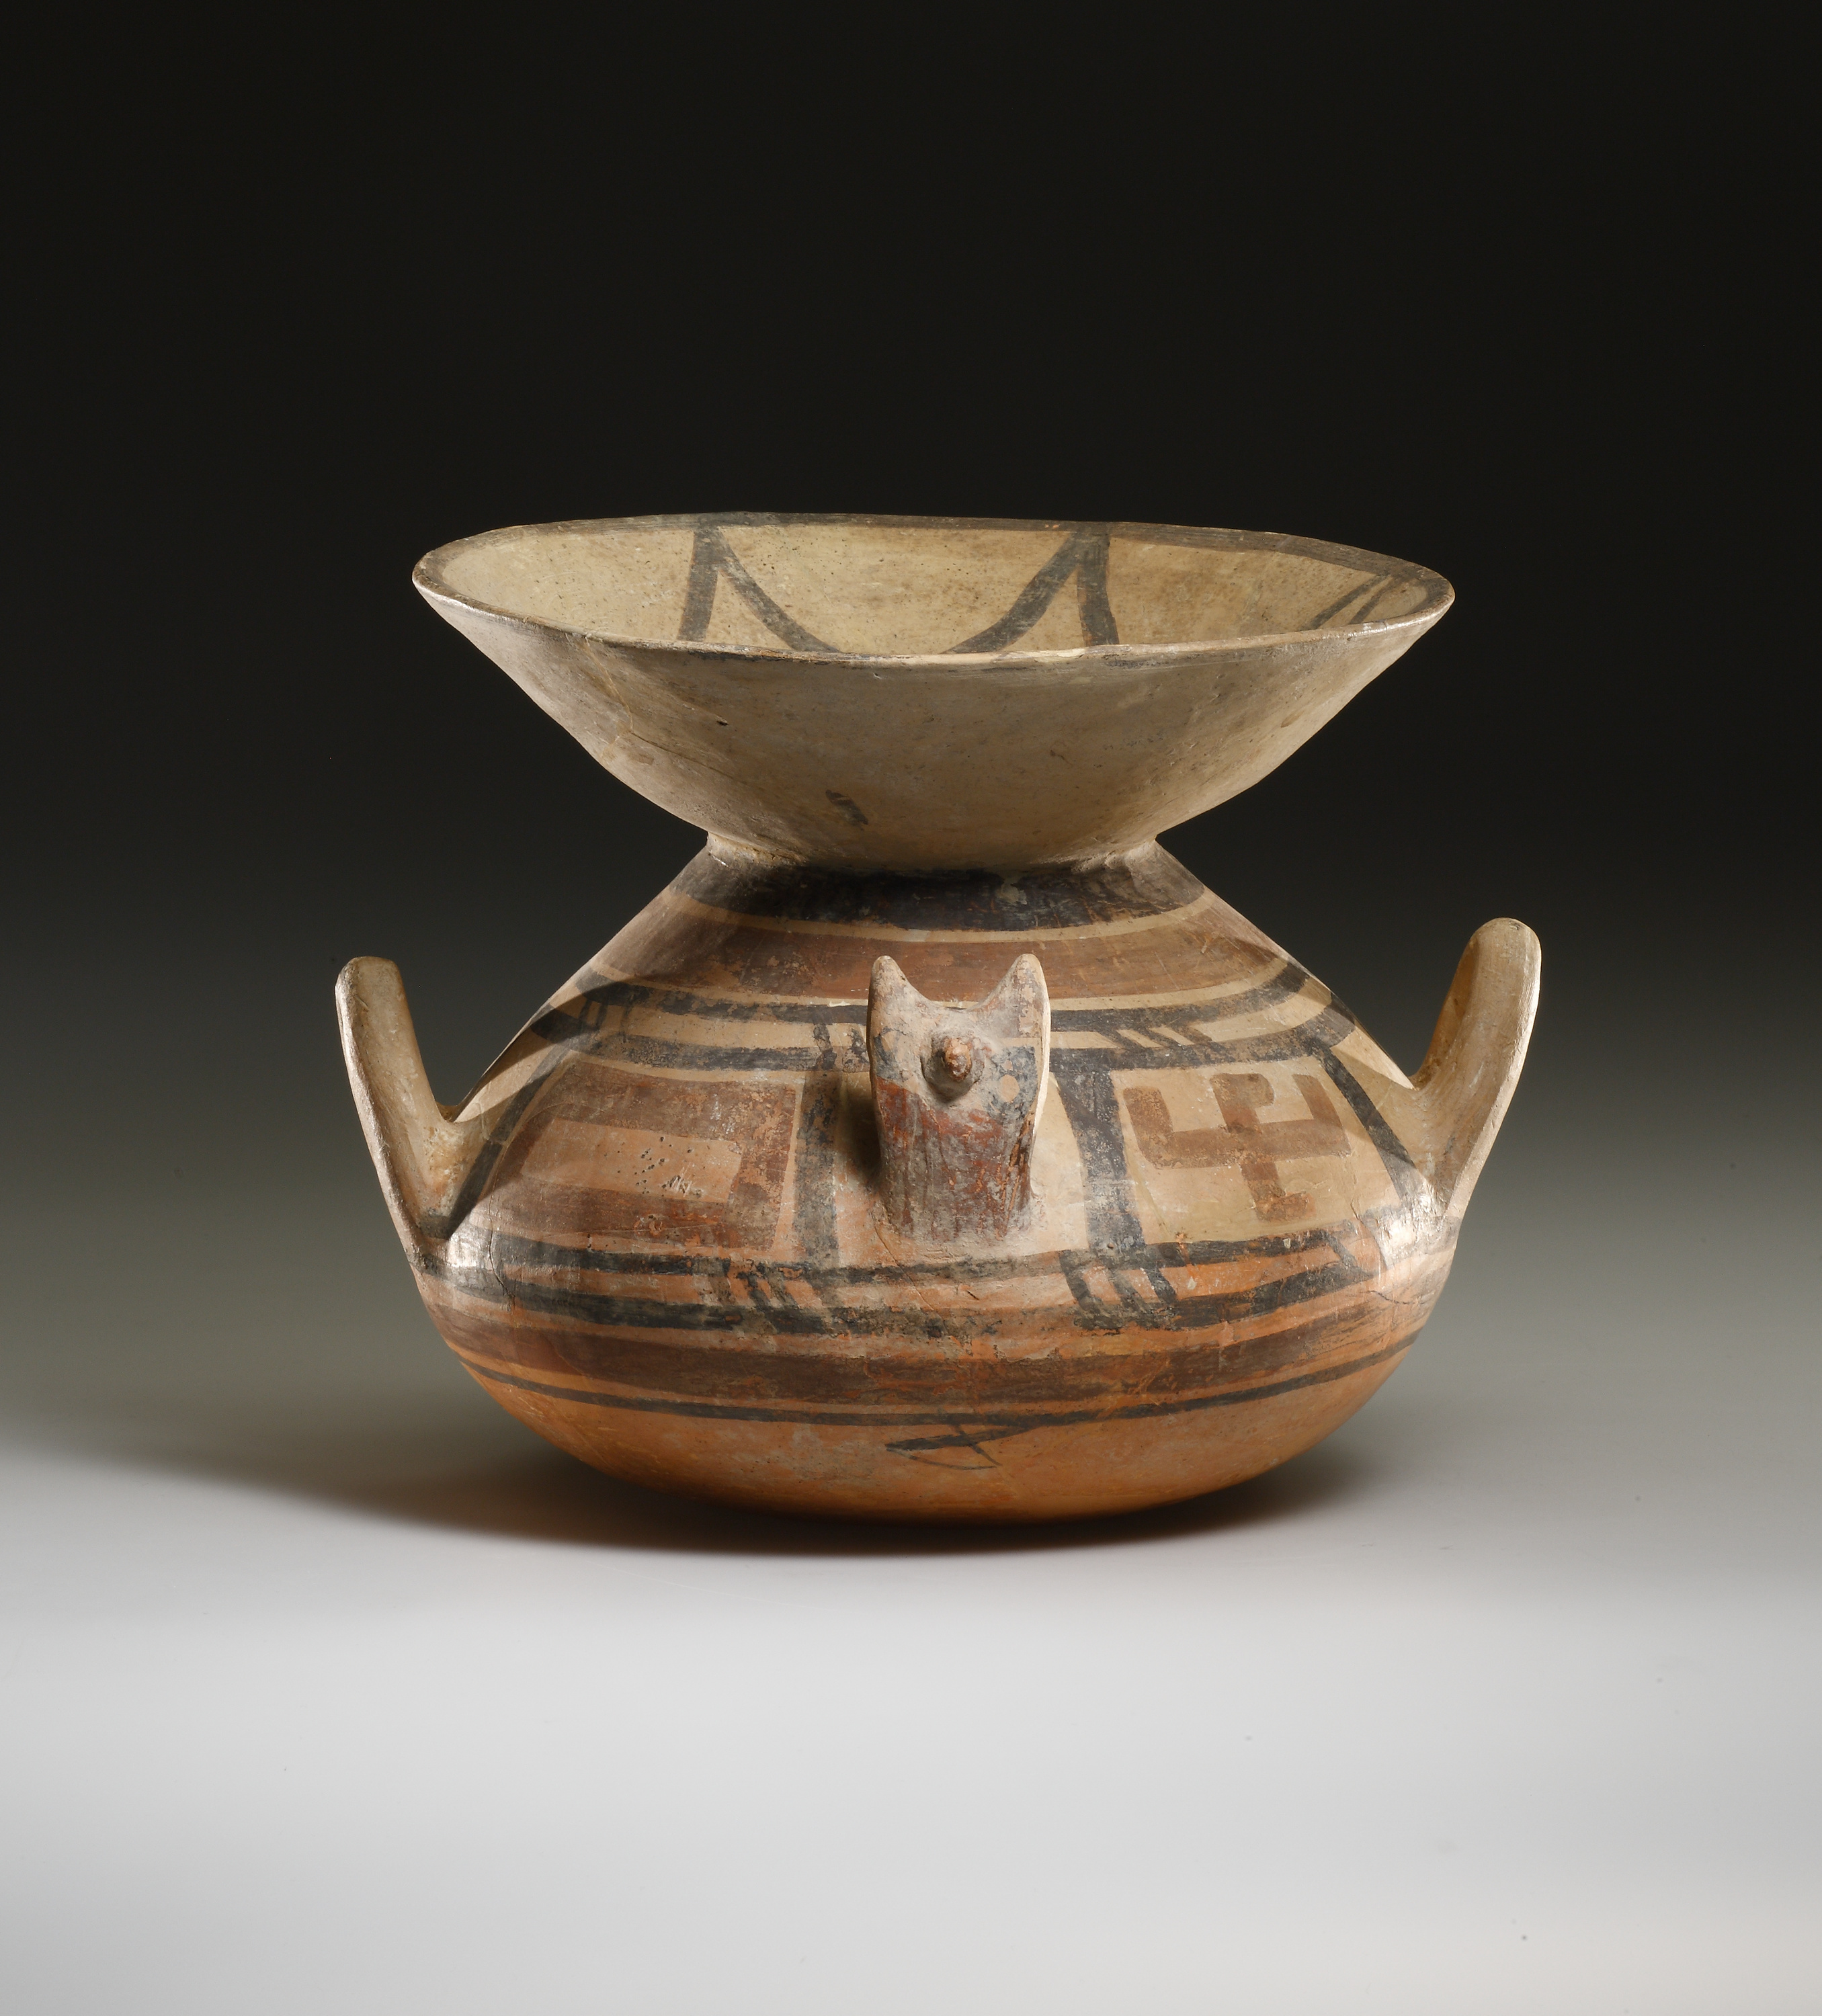 Lot 28 - A Large Daunian Olla with Flaring Mouth